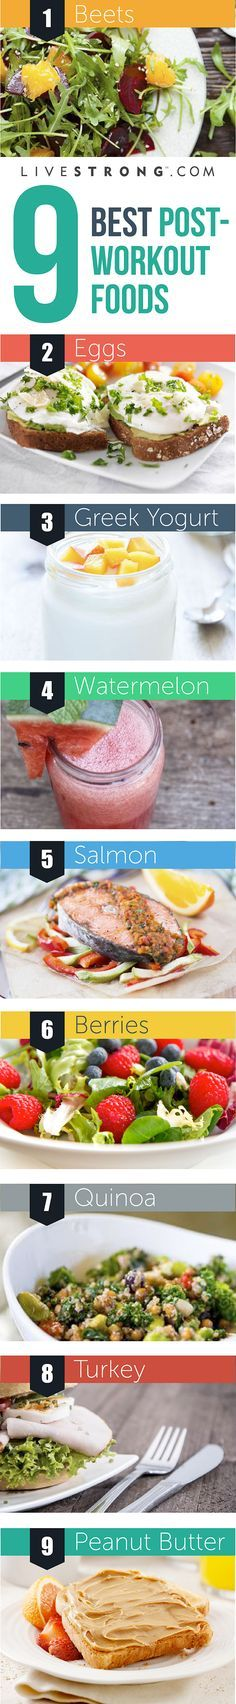 Refuel with these 9 post-workout foods! #fitness #fuel